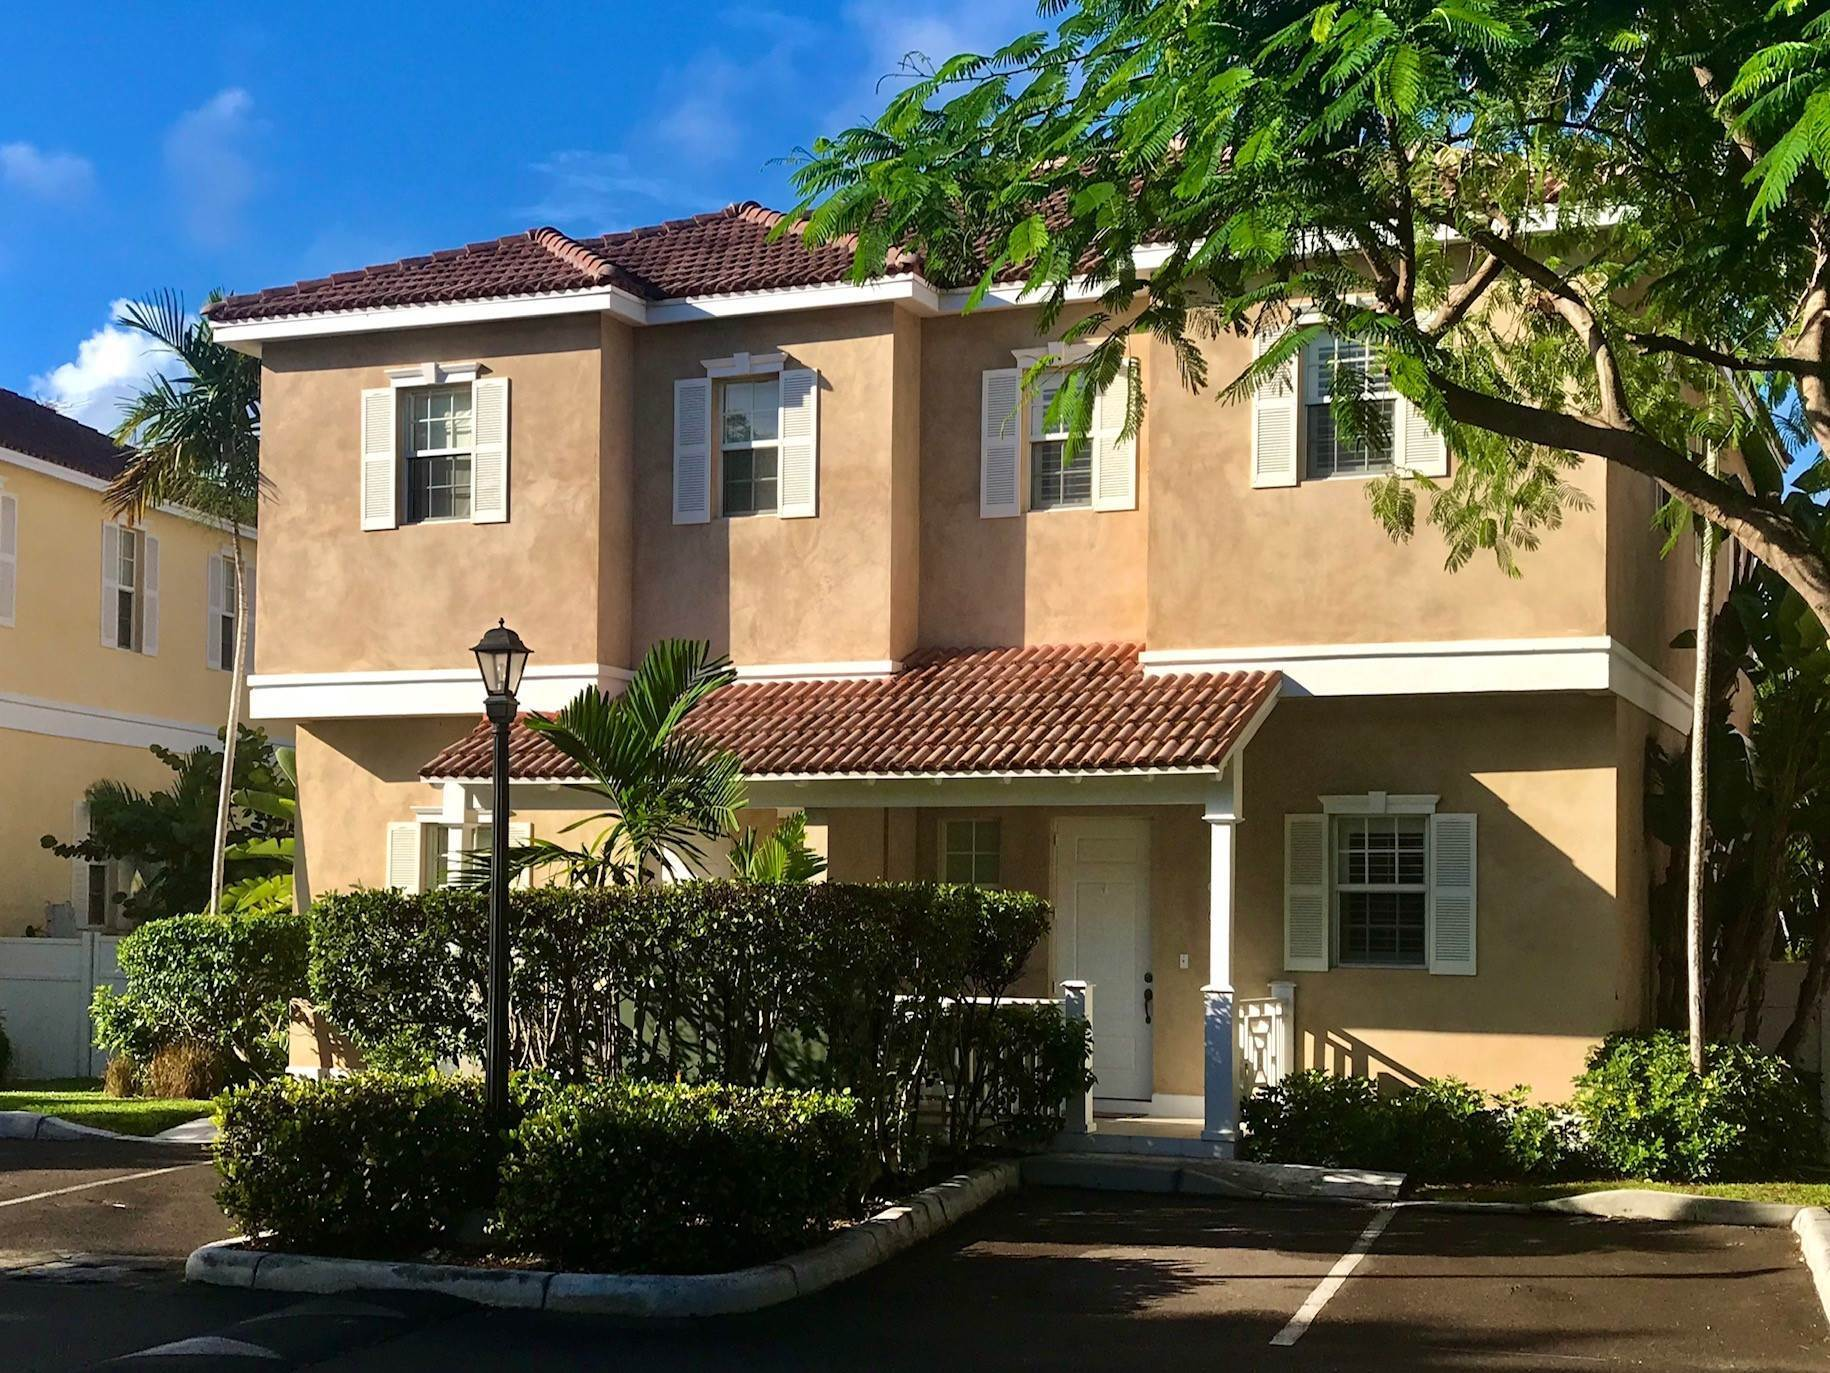 Co-op / Condominio por un Venta en Luxury Executive Balmoral Town Home - MLS 42179 Nueva Providencia / Nassau, Bahamas